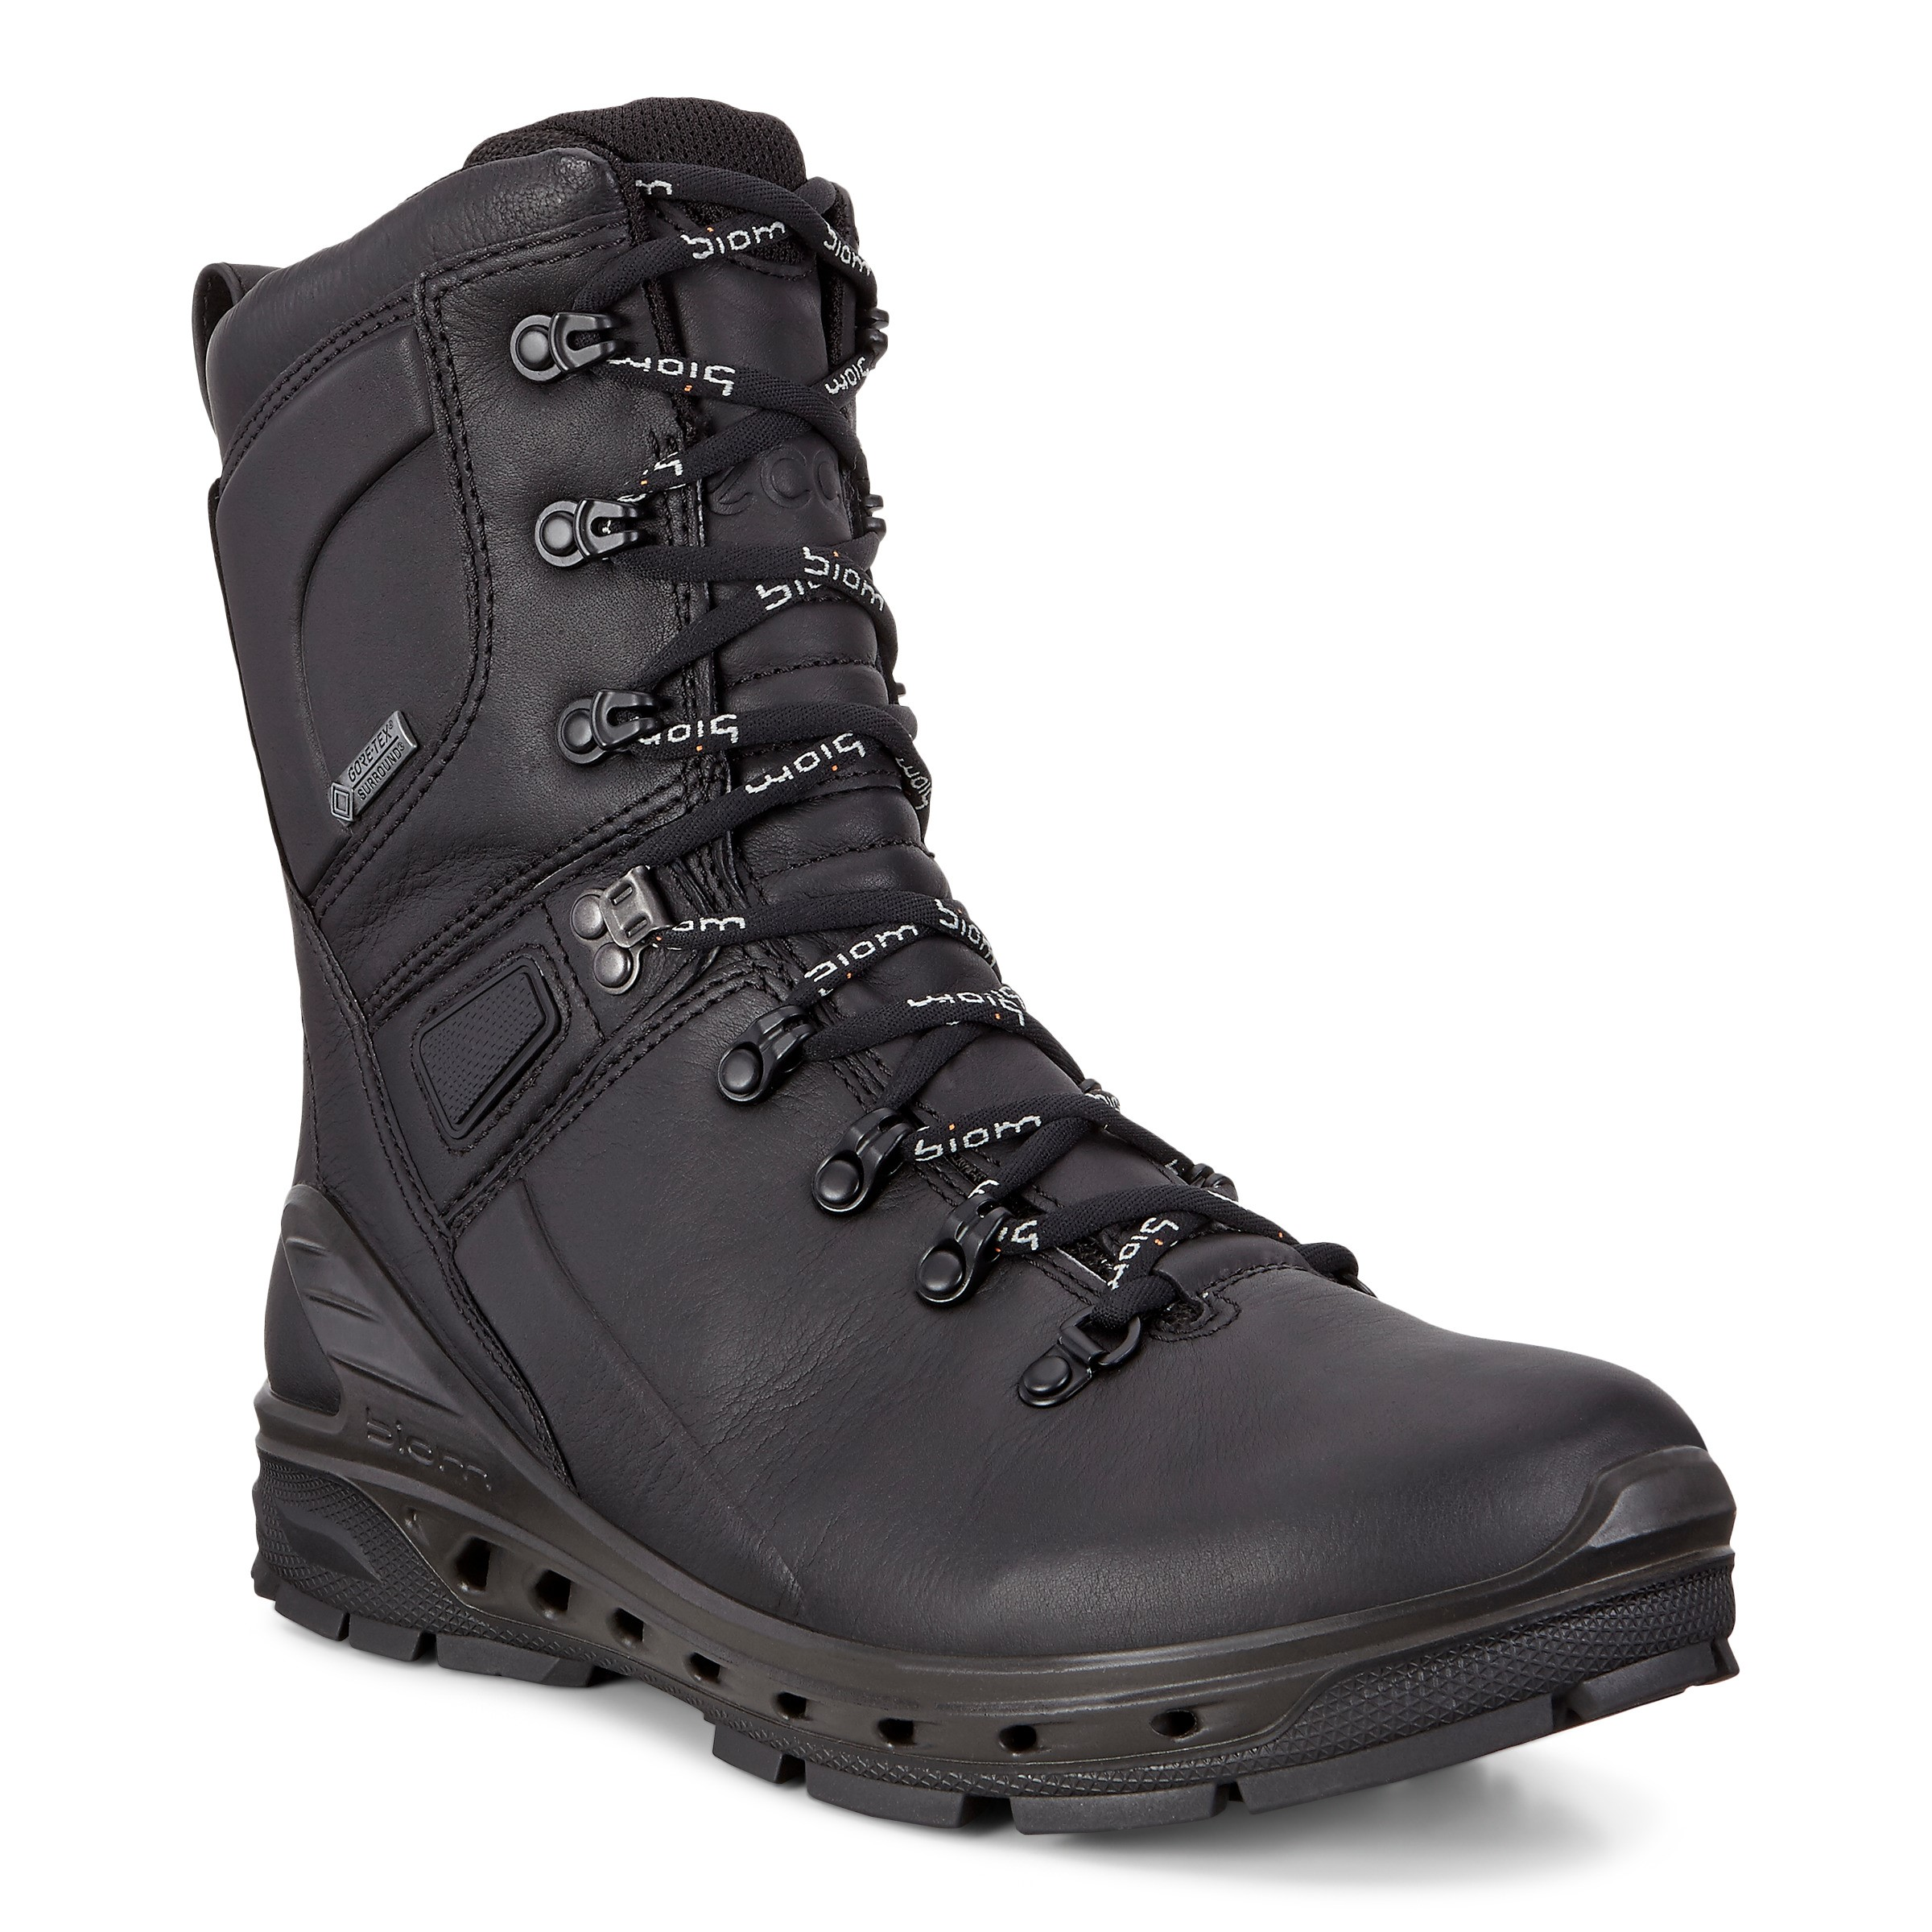 103ff5785 Details about ECCO Biom Venture TR Black Goretex Leather All Terain Outdoor  Hiking Boots